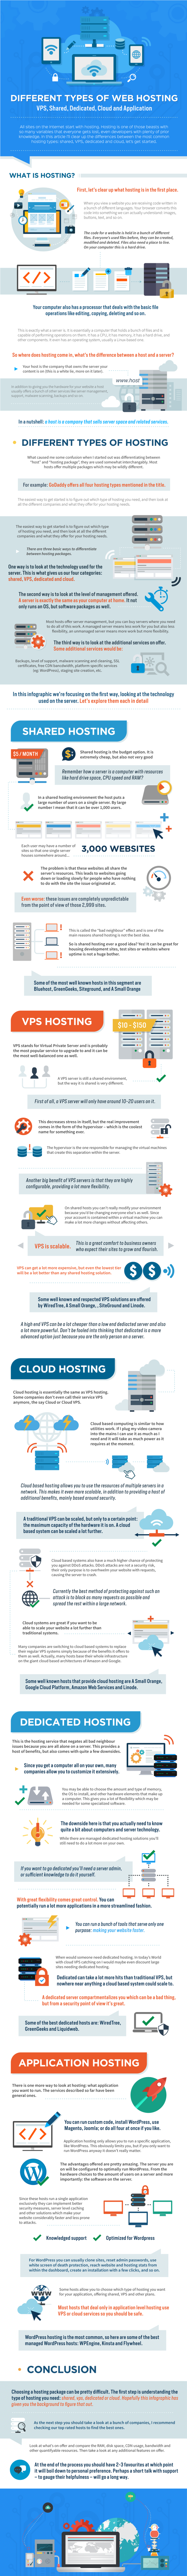 Different-Types-of-Web-Hosting-HD-750x10338